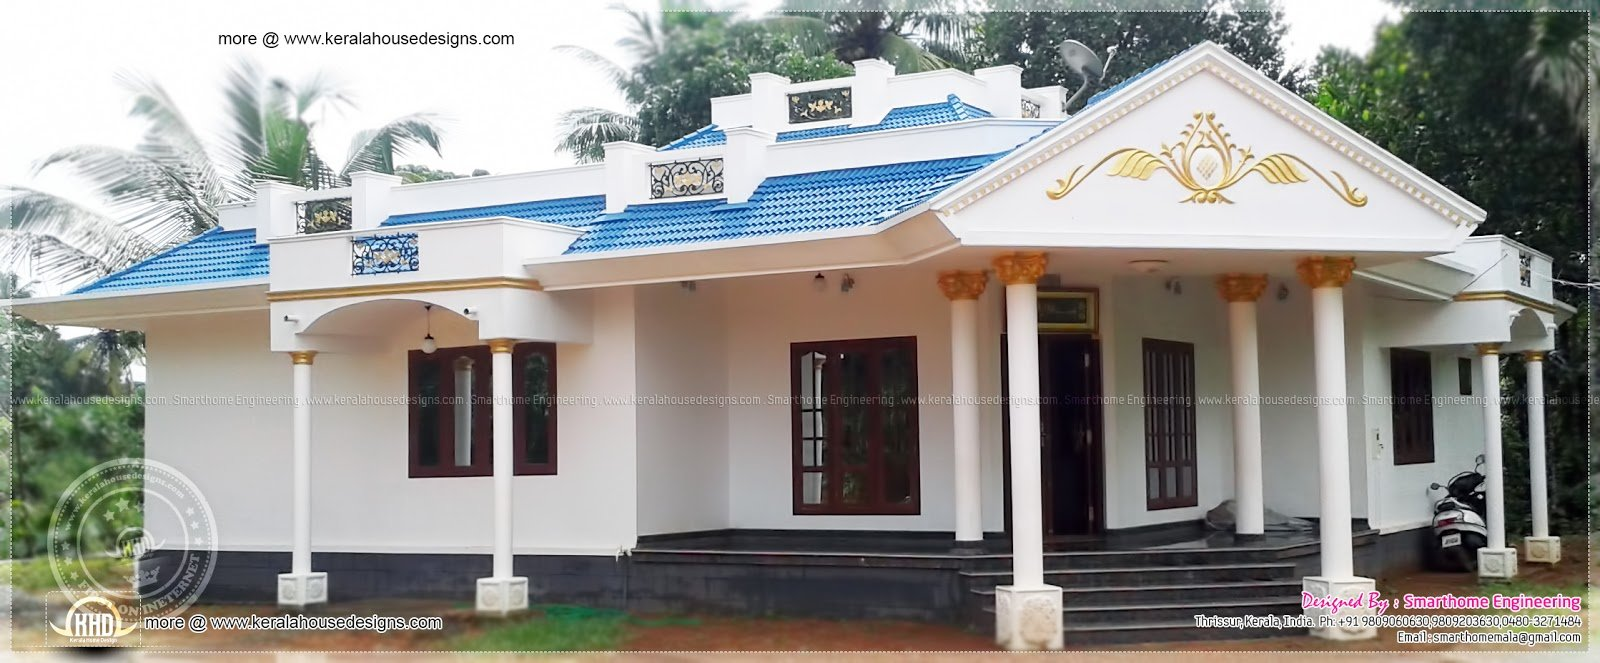 Best 1680 Sq Ft 3 Bedroom Single Floor House Kerala Home Design And Floor Plans With Pictures